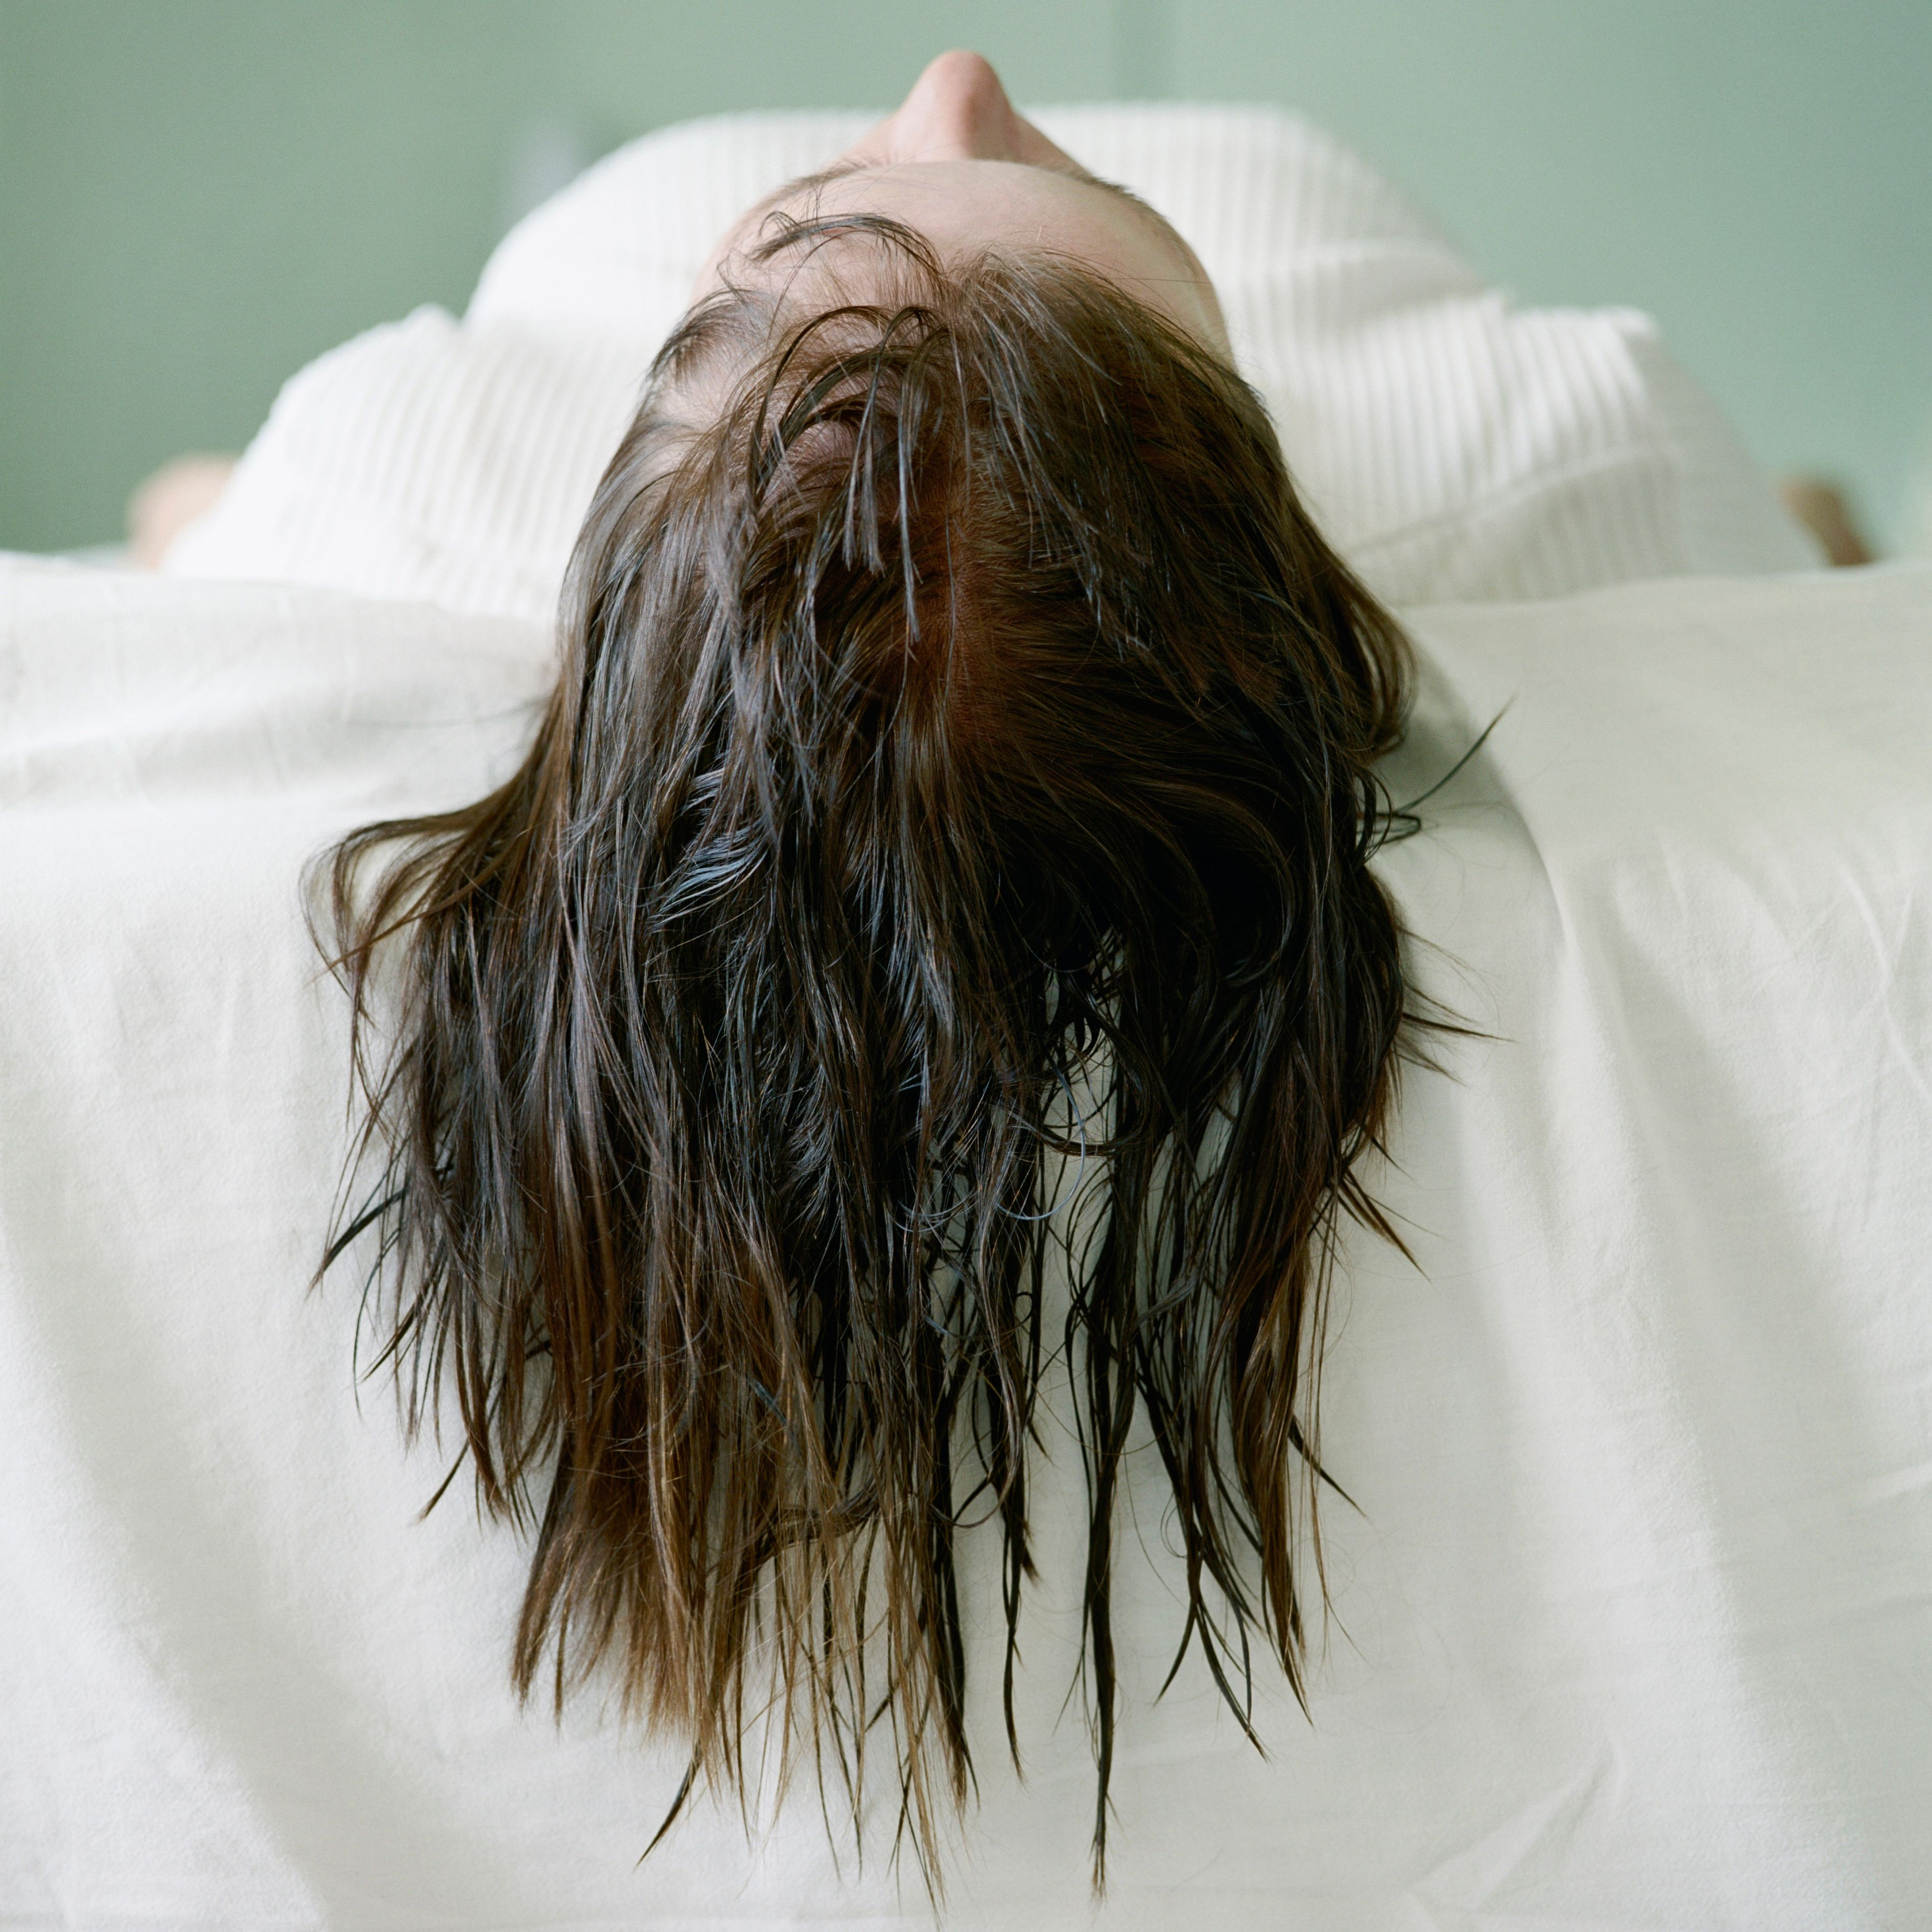 Is it bad to fall asleep with your hair wet